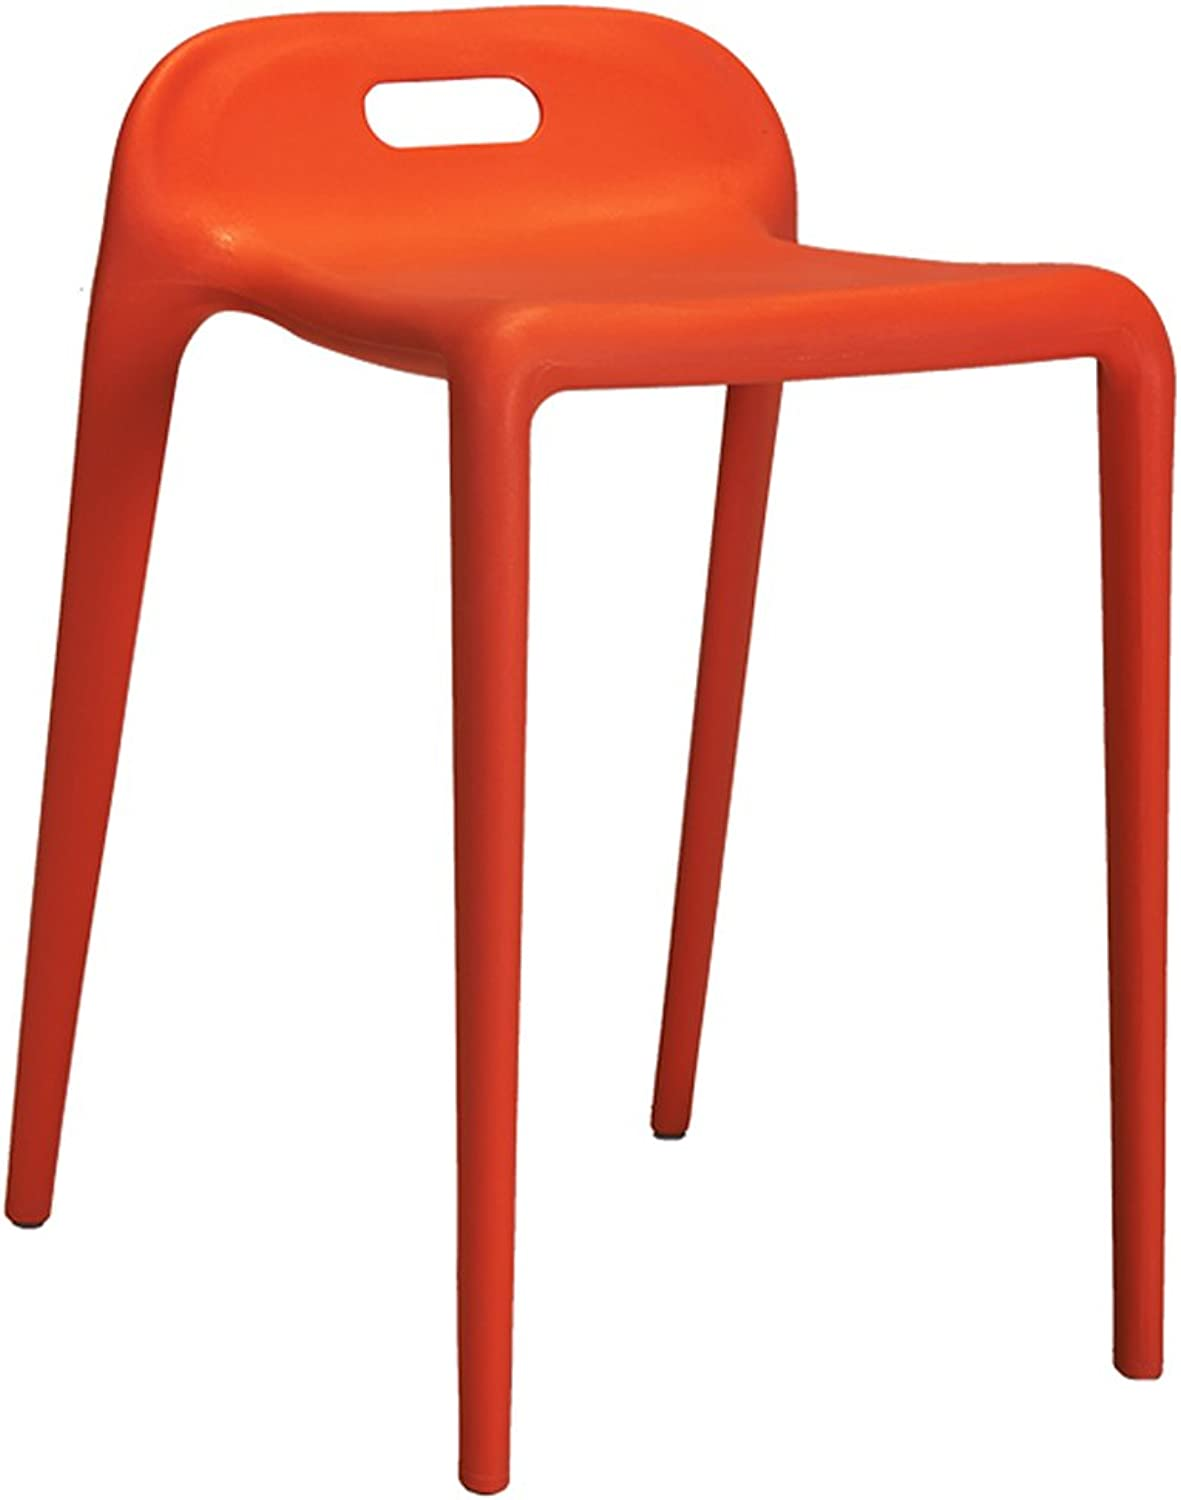 HZB Modern Plastic Chairs, Family Dining Rooms, Stools, Simple Restaurants Waiting for Rest Chairs.